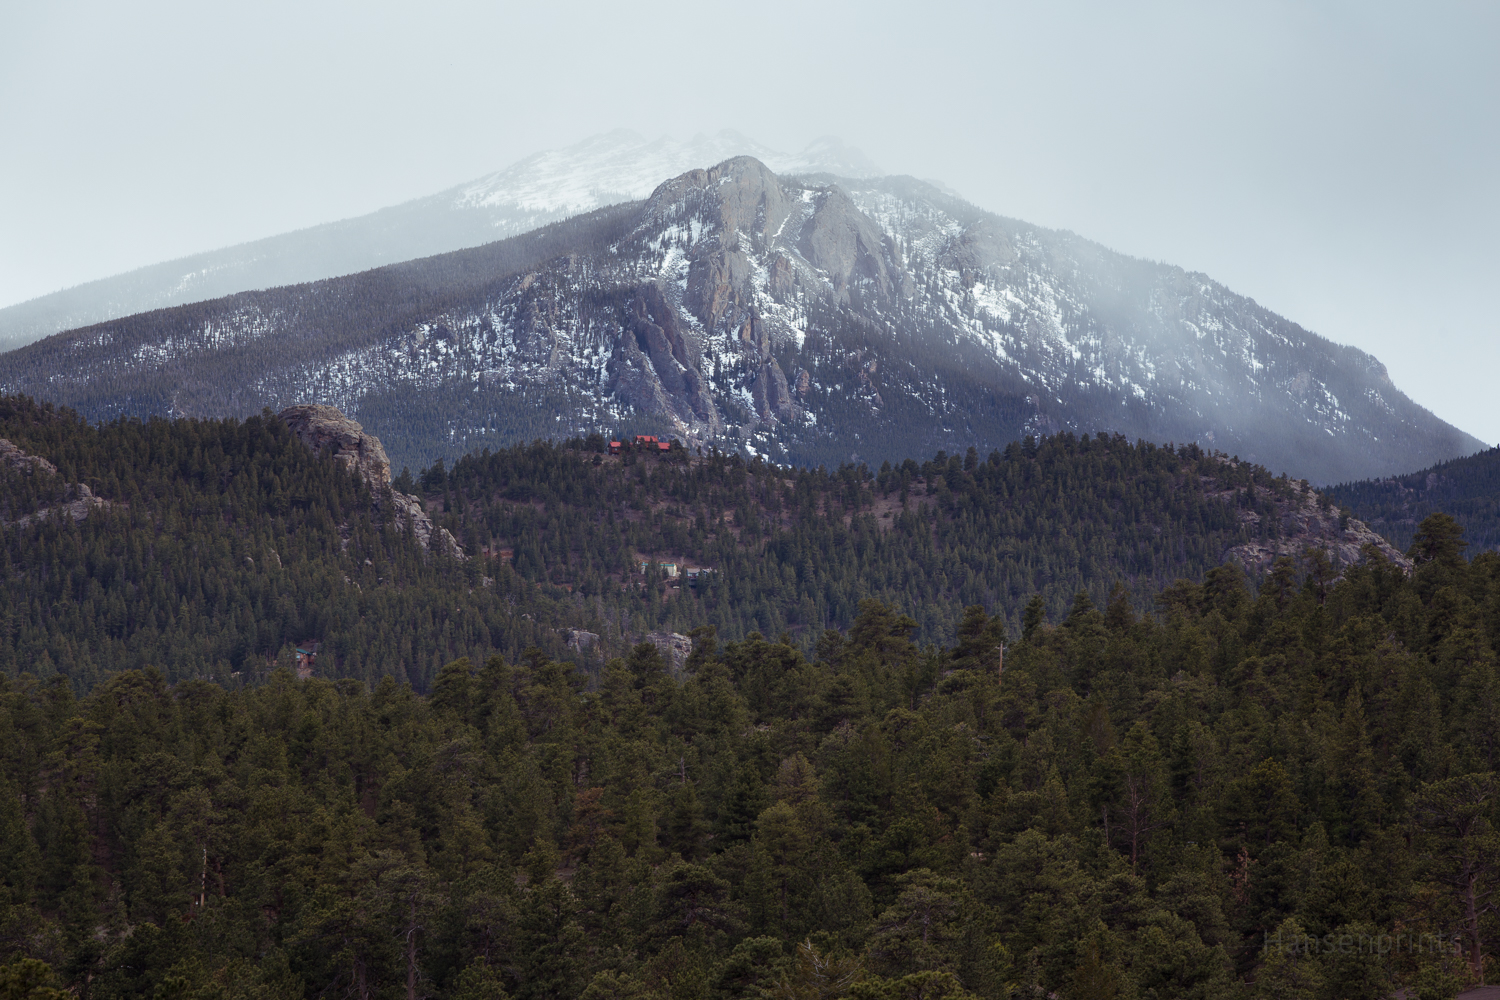 A Rocky Mountain in April